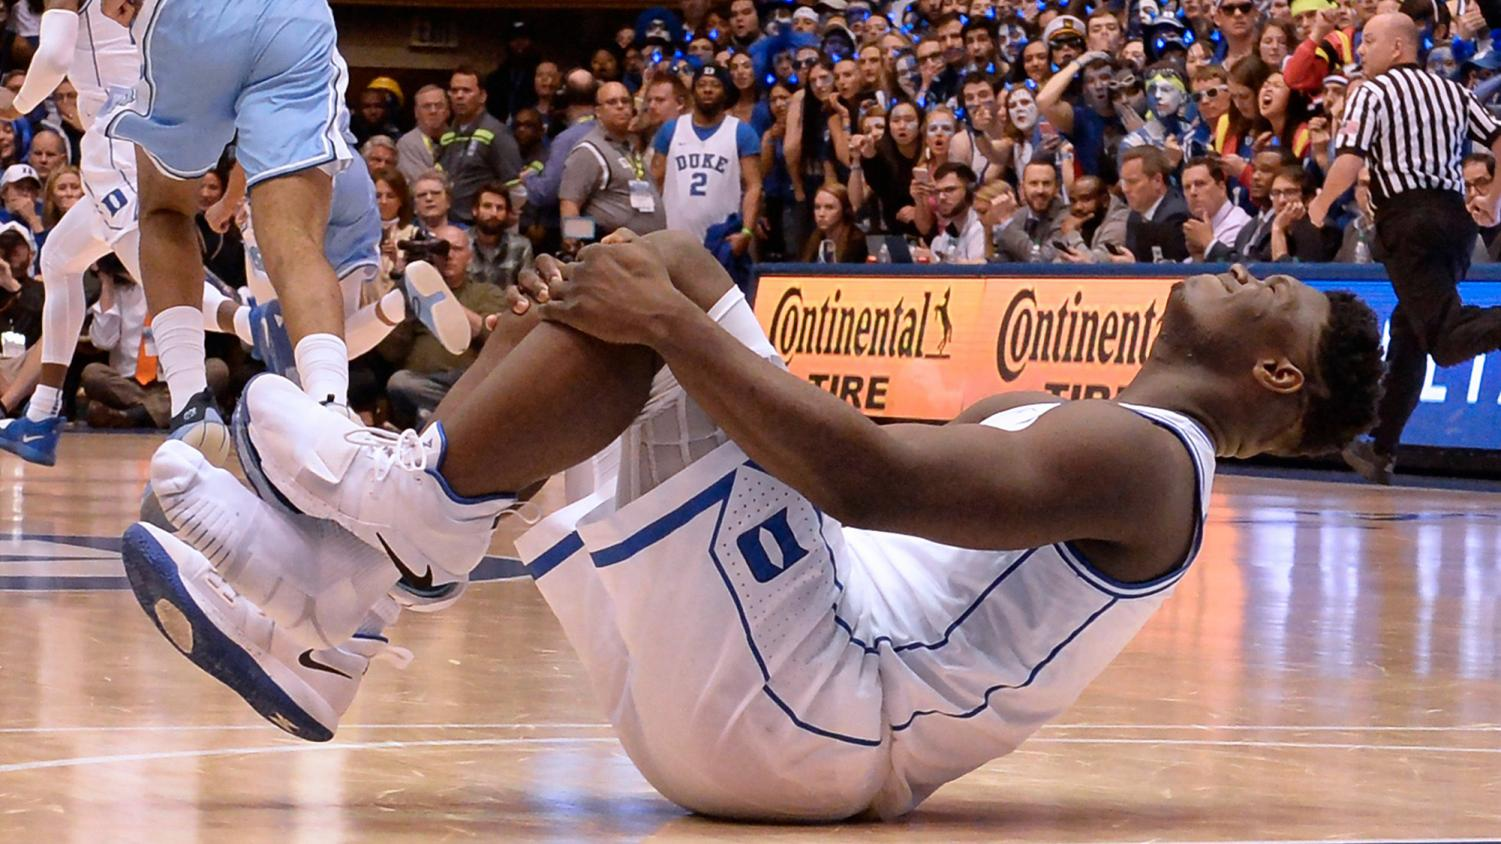 Duke forward Zion Williamson holds his knee after injuring himself and damaging his shoe during the opening moments of the game in the first half on Wednesday, Feb. 20, 2019, at Cameron Indoor Stadium in Durham, N.C. (Chuck Liddy/Raleigh News & Observer/TNS)